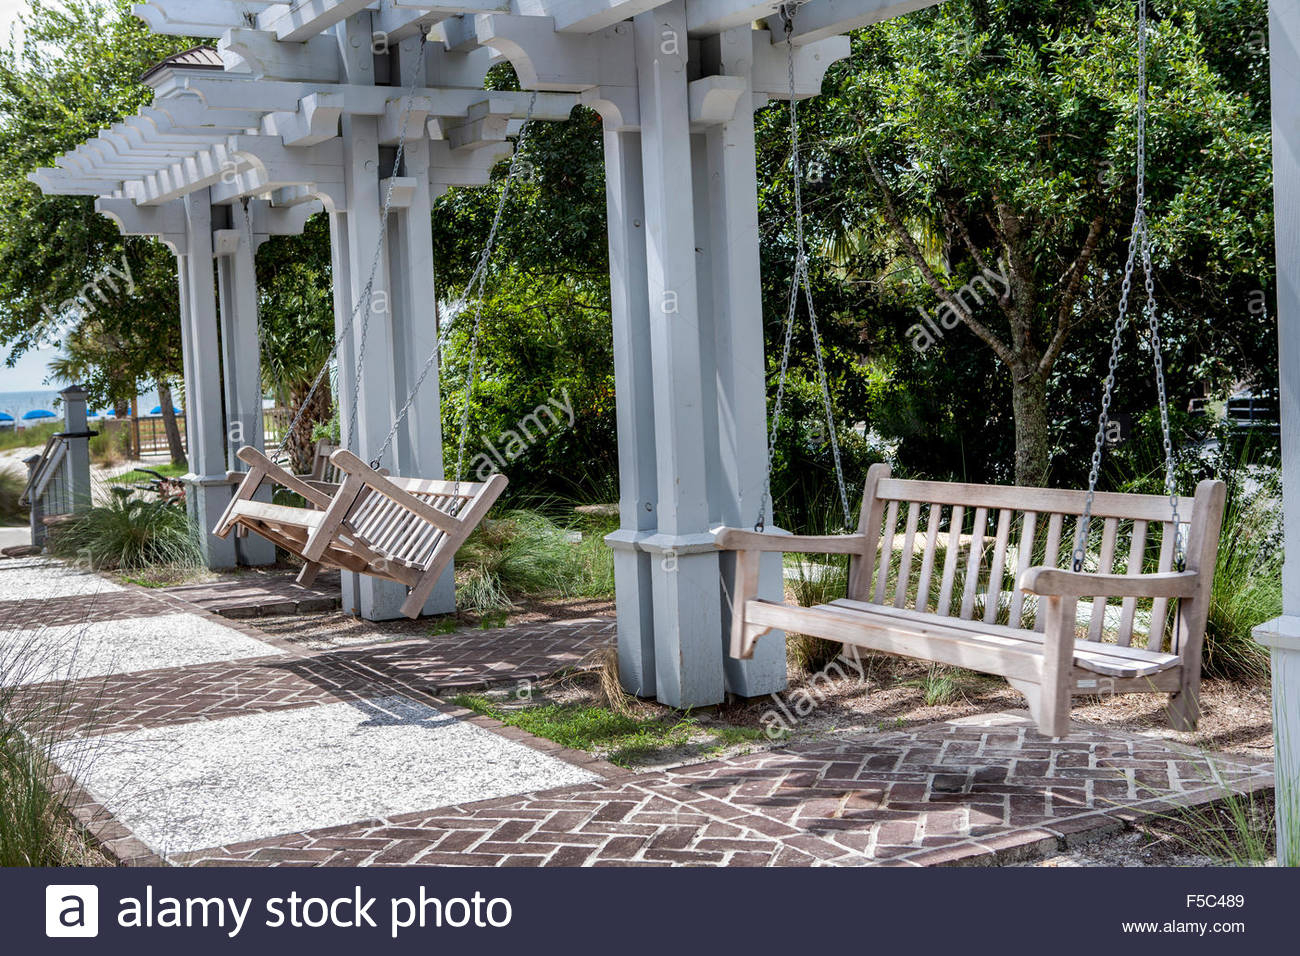 Wood Porch Swings In Park Stock Photo: 89391913 – Alamy Regarding Porch Swings (View 11 of 25)